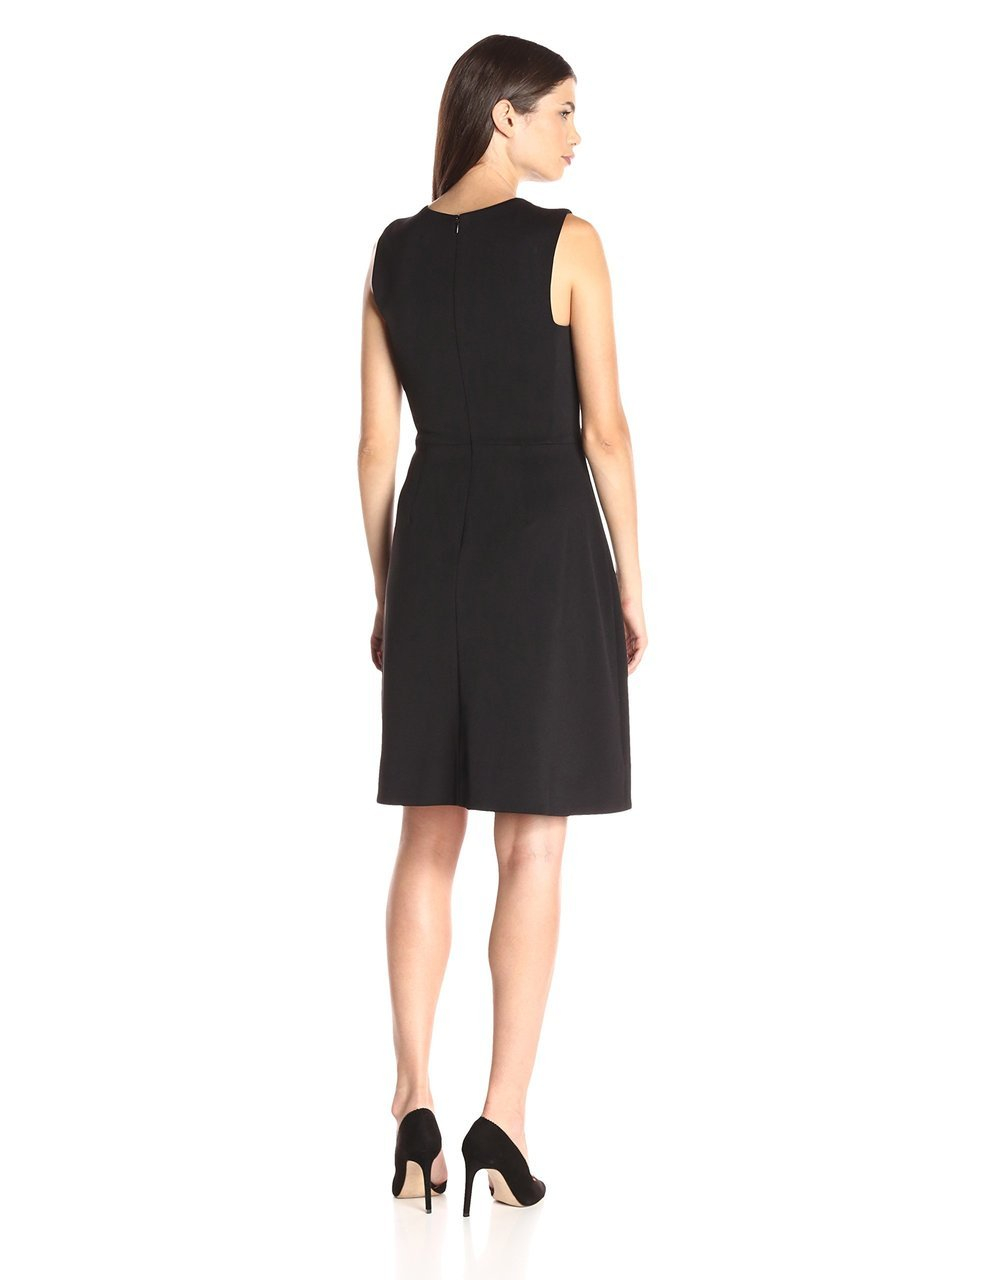 Maggy London - G2499M Embellished Neck Sleeveless Dress in Black